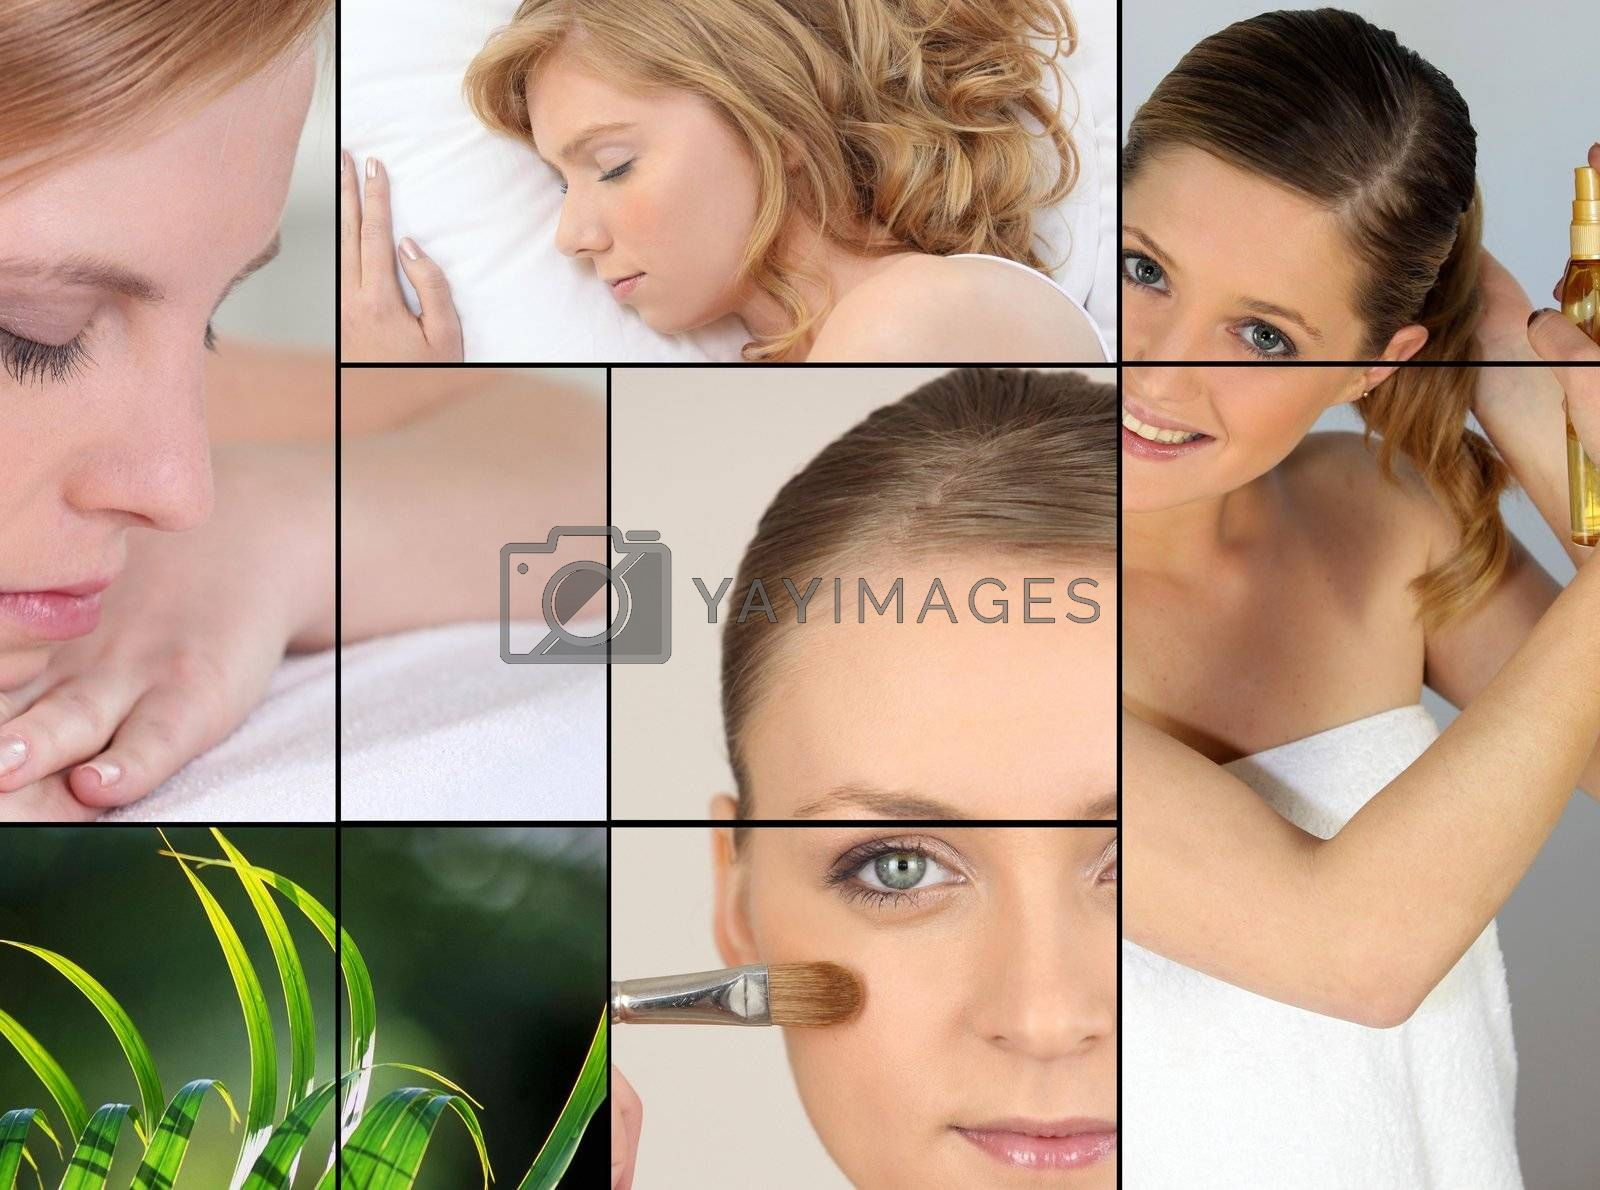 Women, beauty and relaxation by phovoir